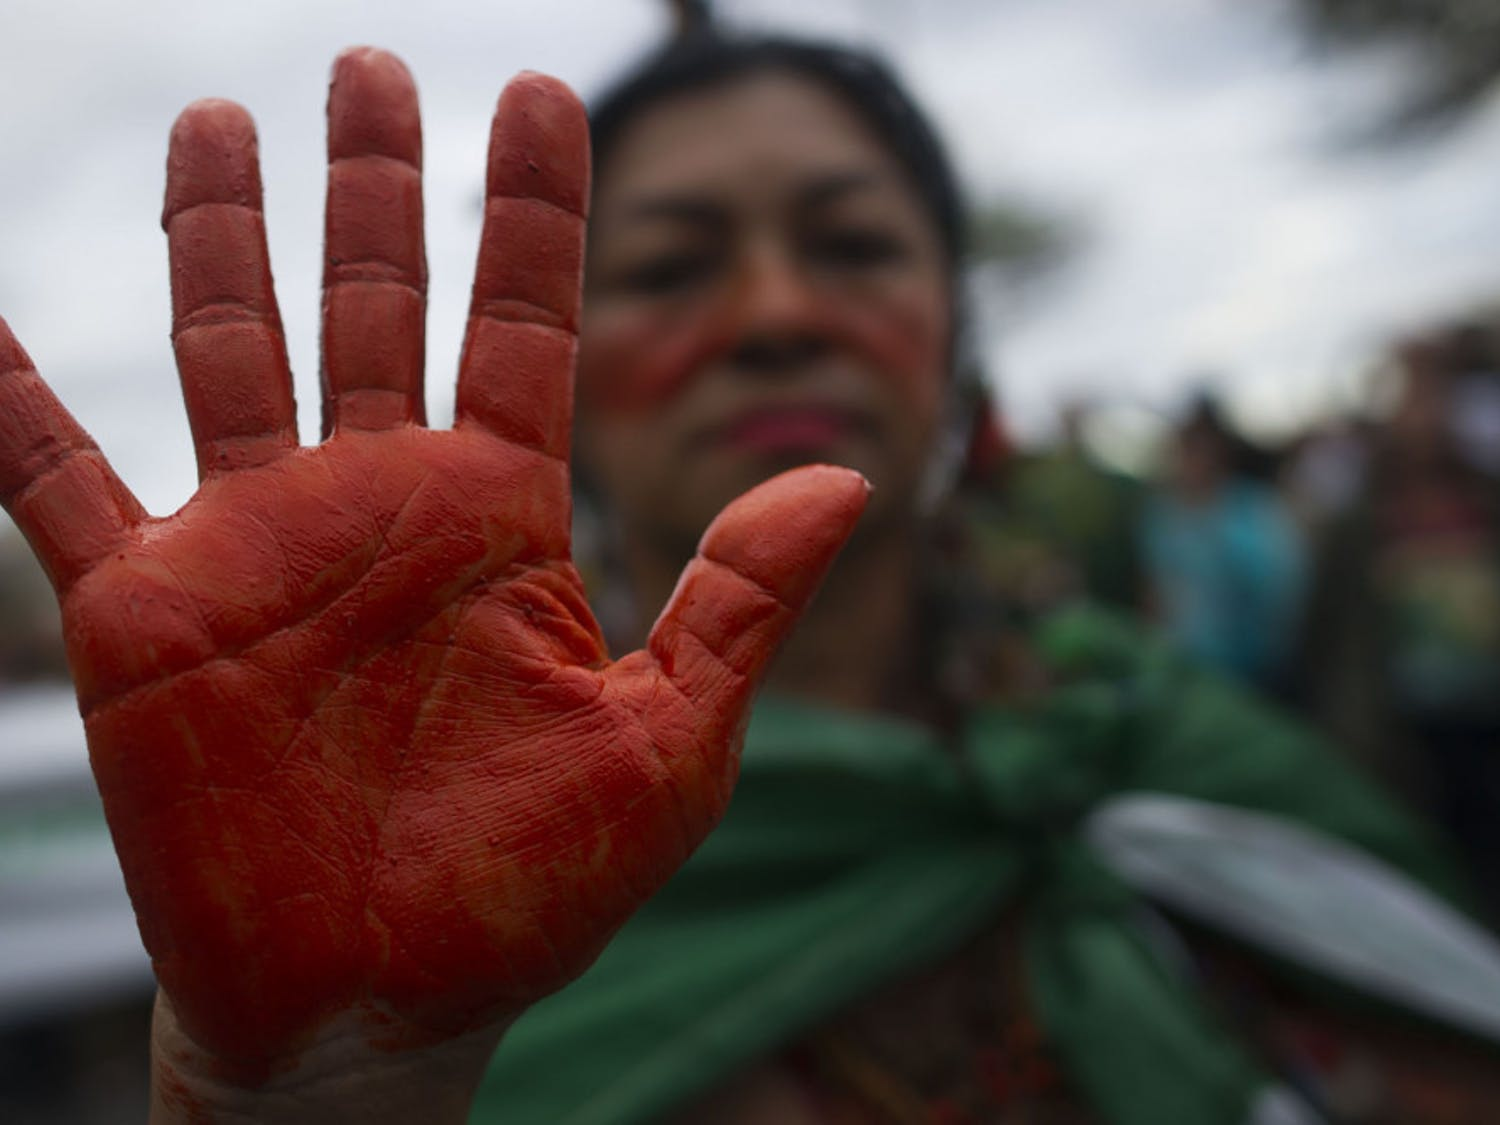 An indigenous woman shows her hands painted in red, representing blood, during a protest in defense of the Amazon while wildfires burn in that region, in Rio de Janeiro, Brazil, Sunday, Aug, 25, 2019. Experts from the country's satellite monitoring agency say most of the fires are set by farmers or ranchers clearing existing farmland, but the same monitoring agency has reported a sharp increase in deforestation this year as well. (AP Photo/Bruna Prado)